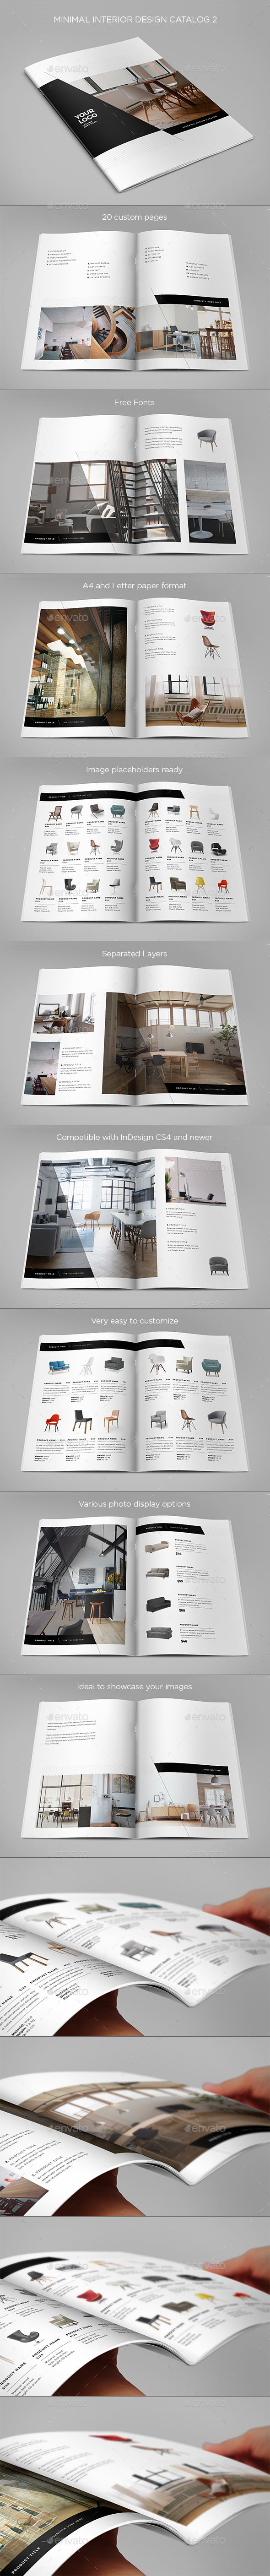 GraphicRiver Minimal Interior Design Catalog 2 20892714